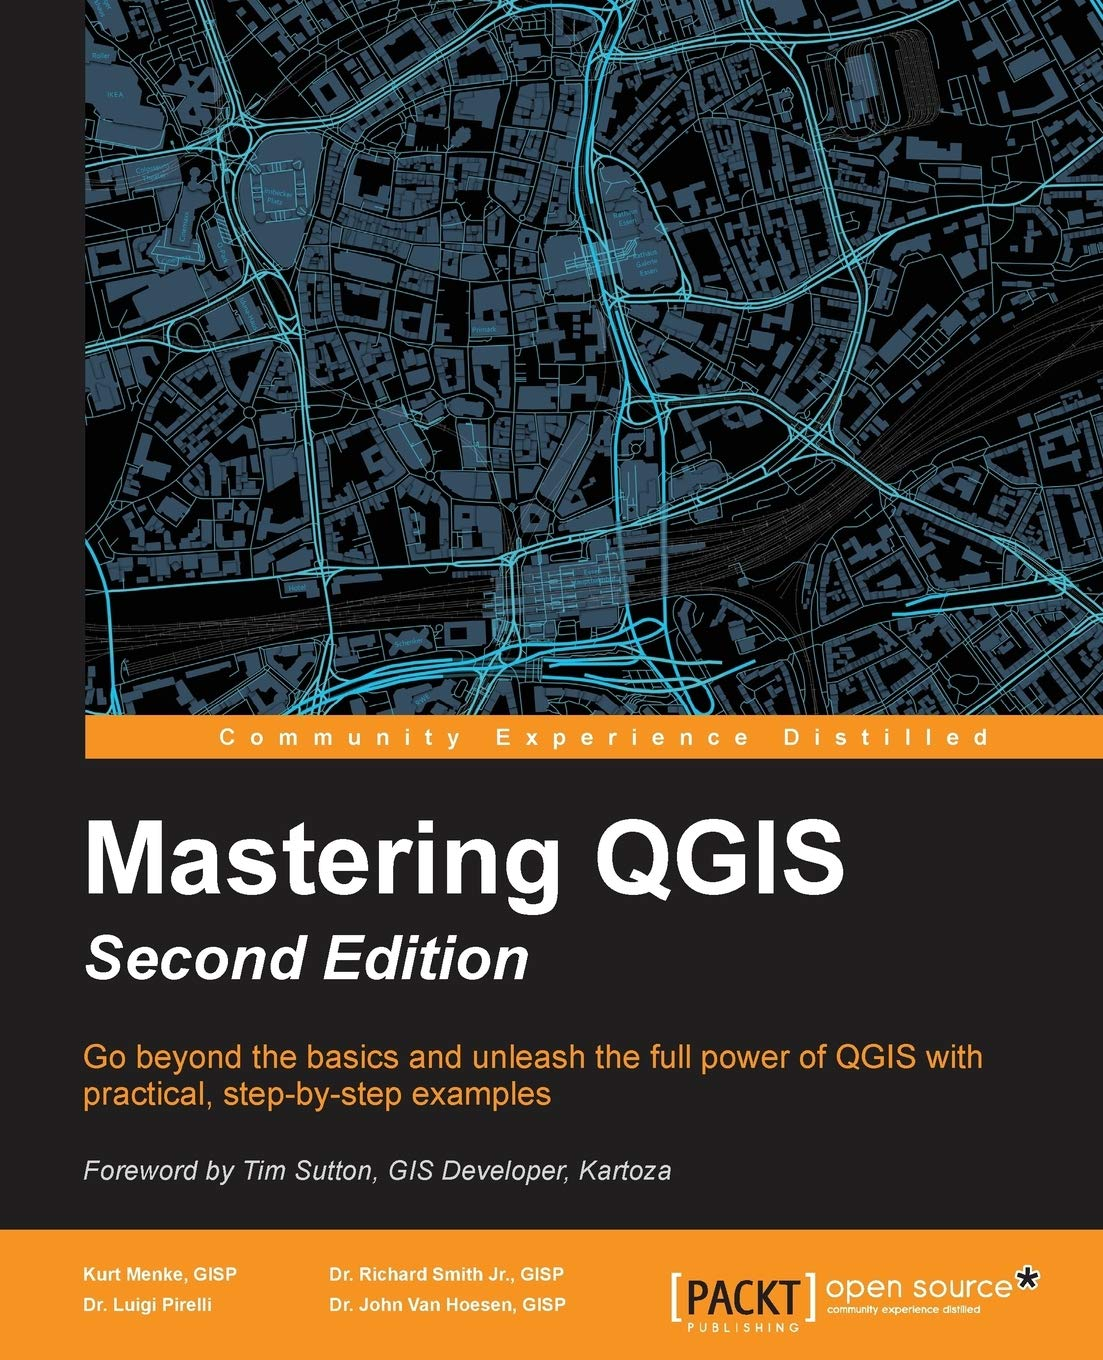 Image OfMastering QGIS - Second Edition: Go Beyond The Basics And Unleash The Full Power Of QGIS With Practical, Step-by-step Exam...